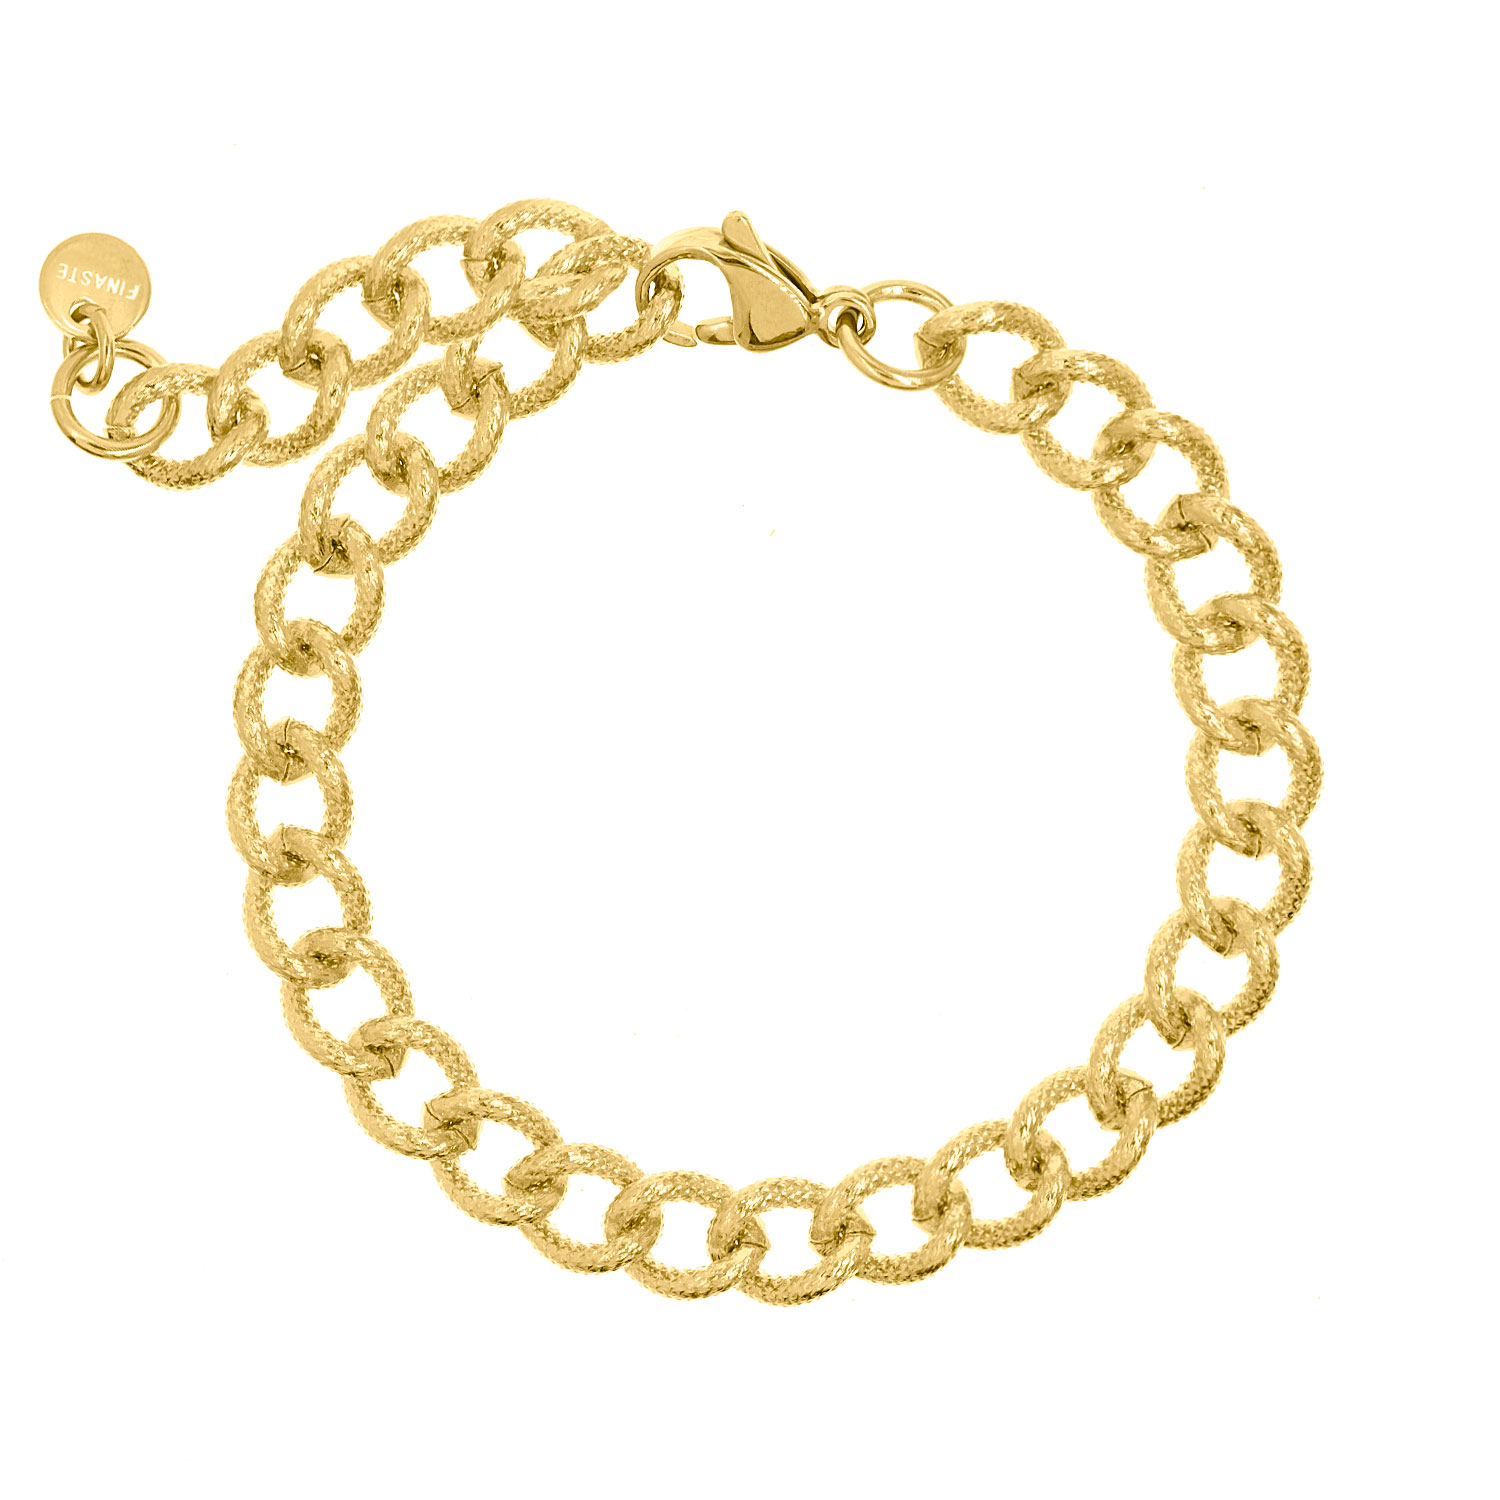 Gouden trendy chain armband